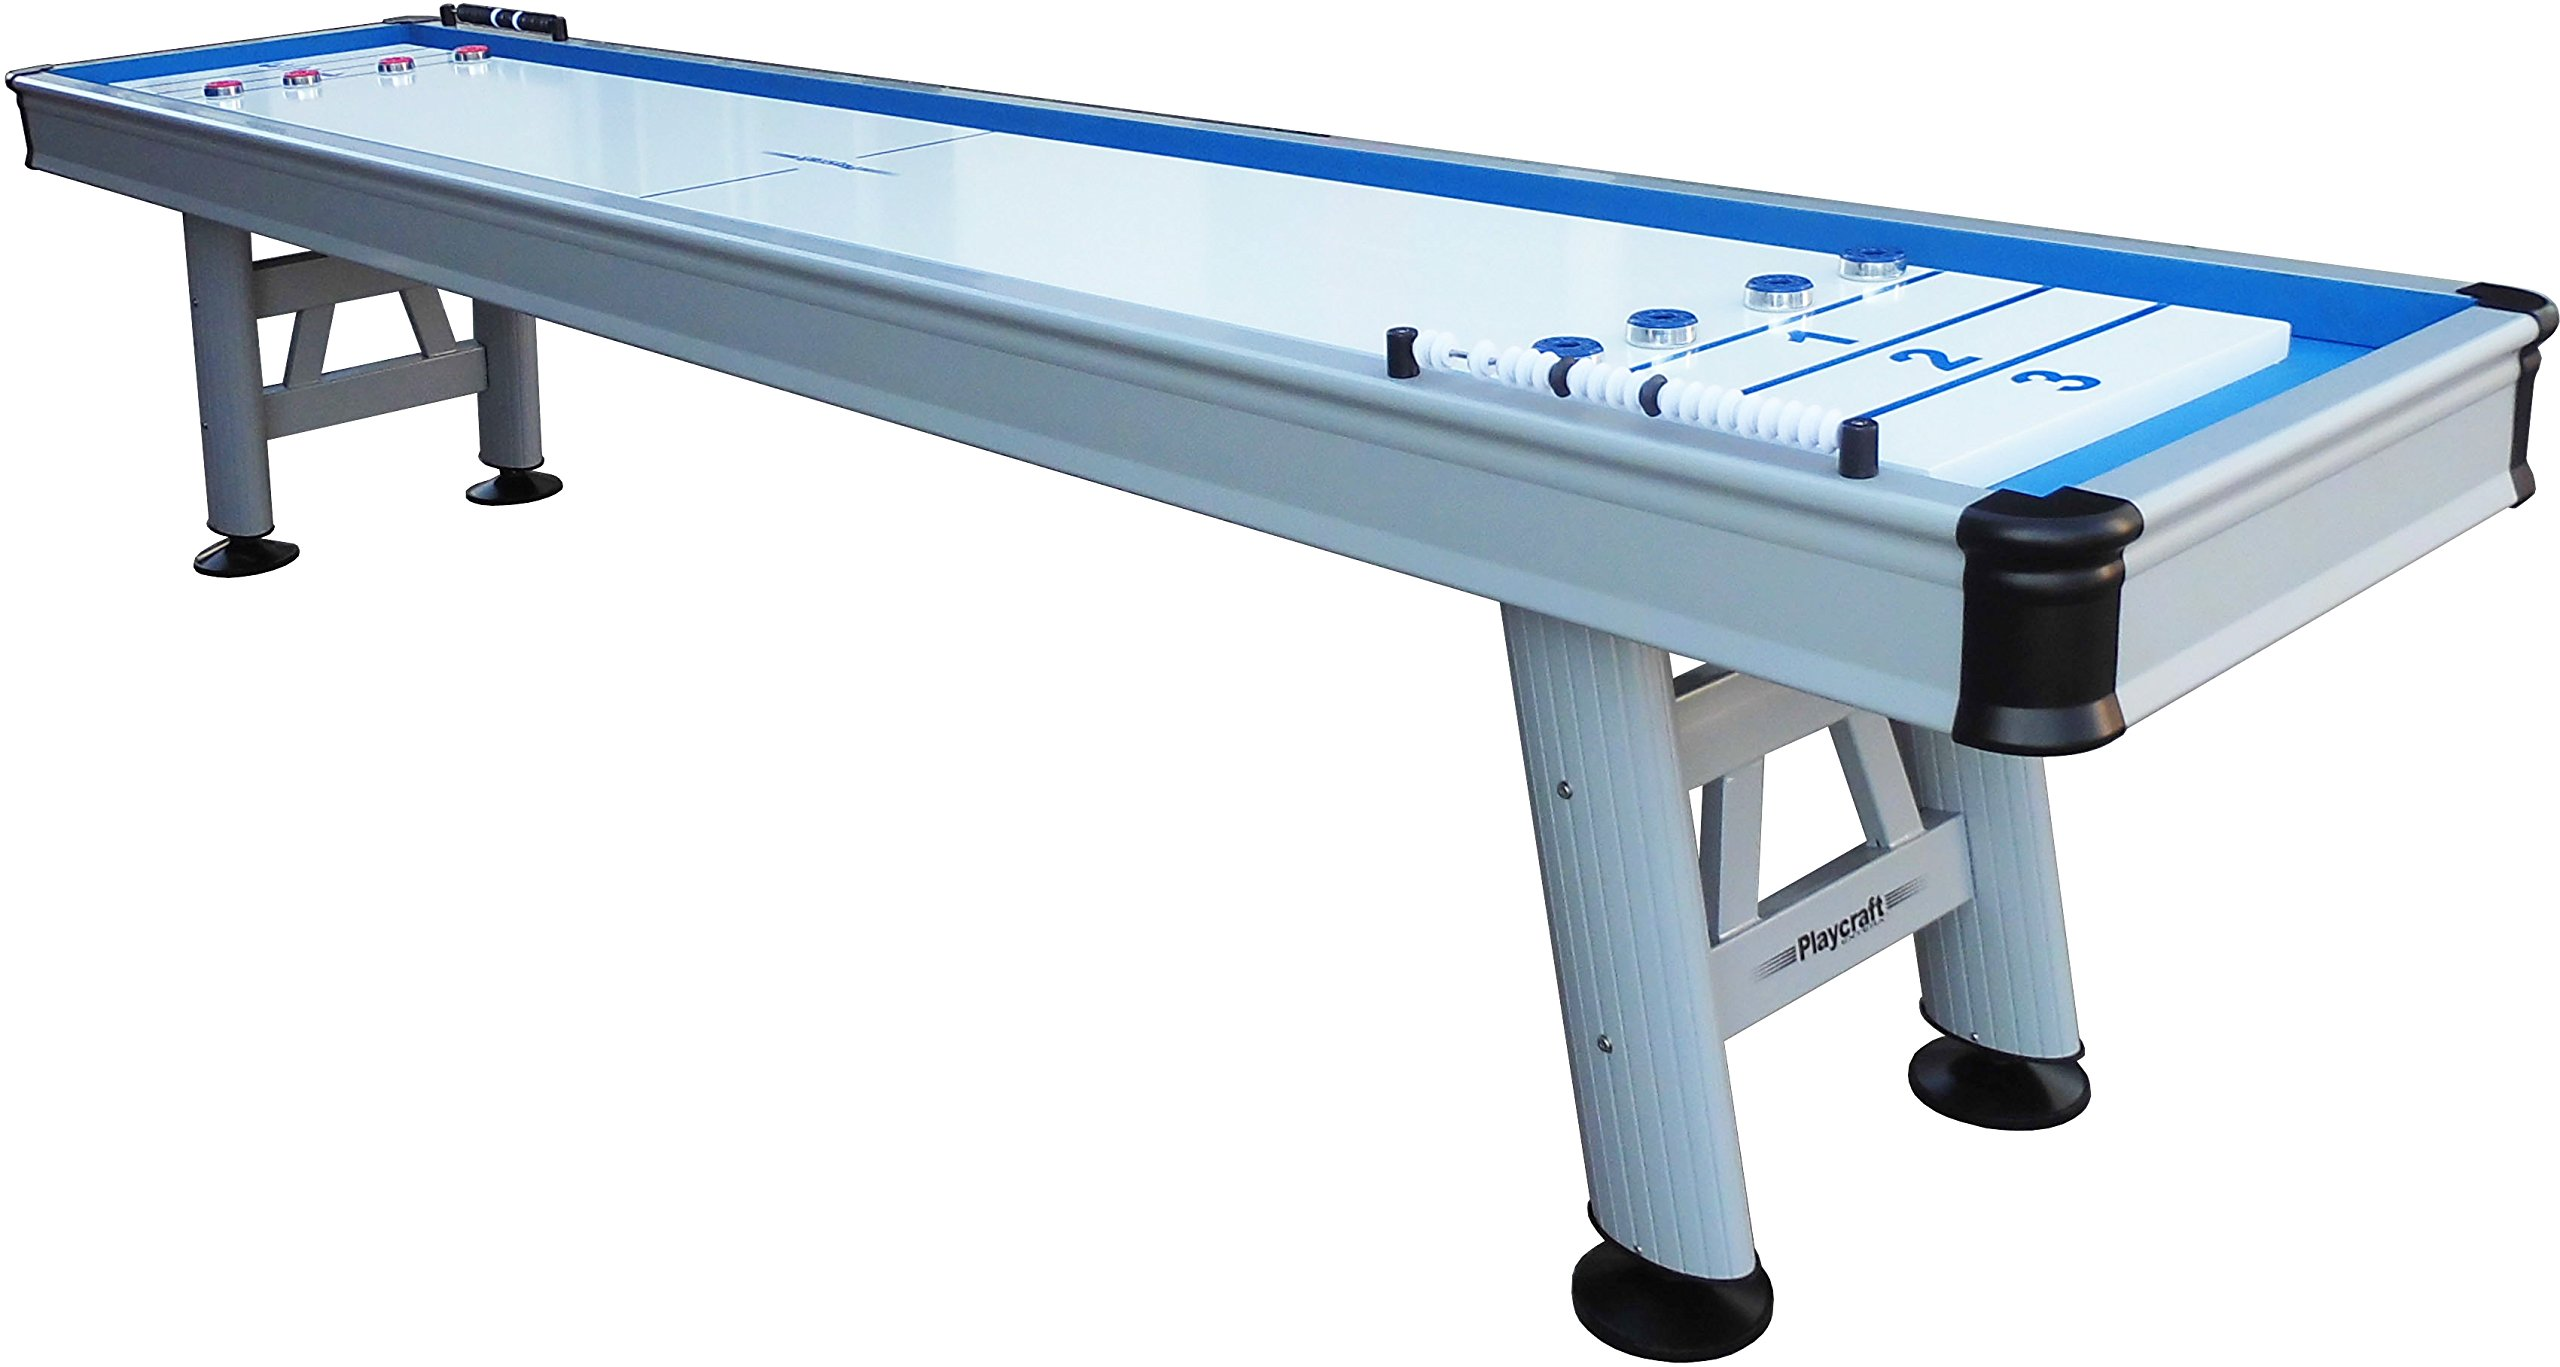 Playcraft Extera 12' Outdoor Shuffleboard Table with 20'' Playfield by Playcraft